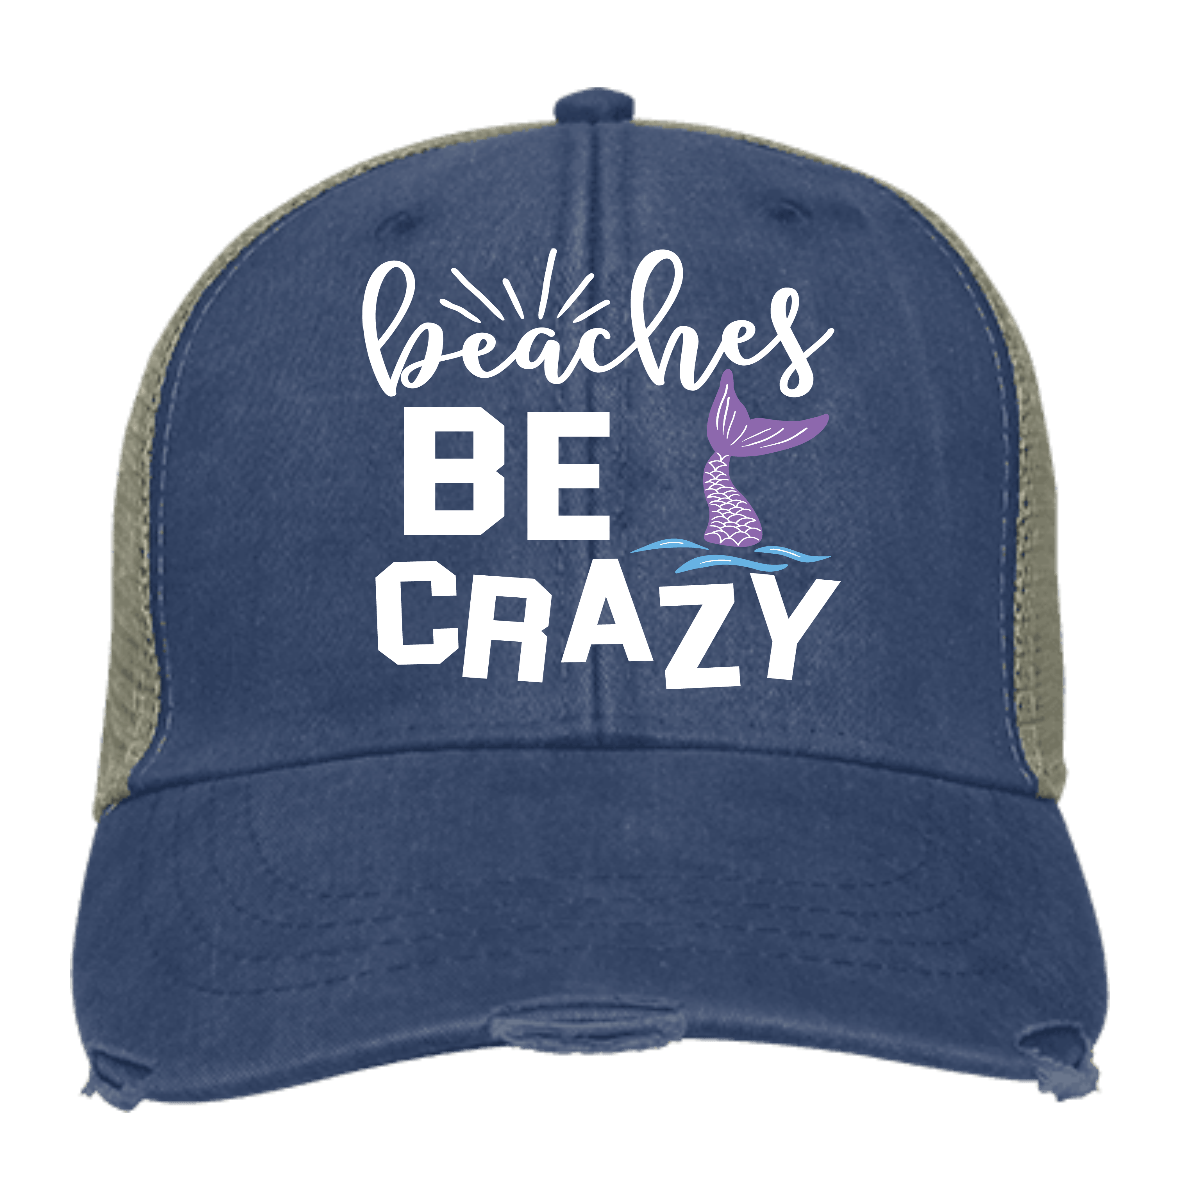 Beaches Be Crazy Adams Ollie Cap - Spicy Mermaid 8e779b1da44